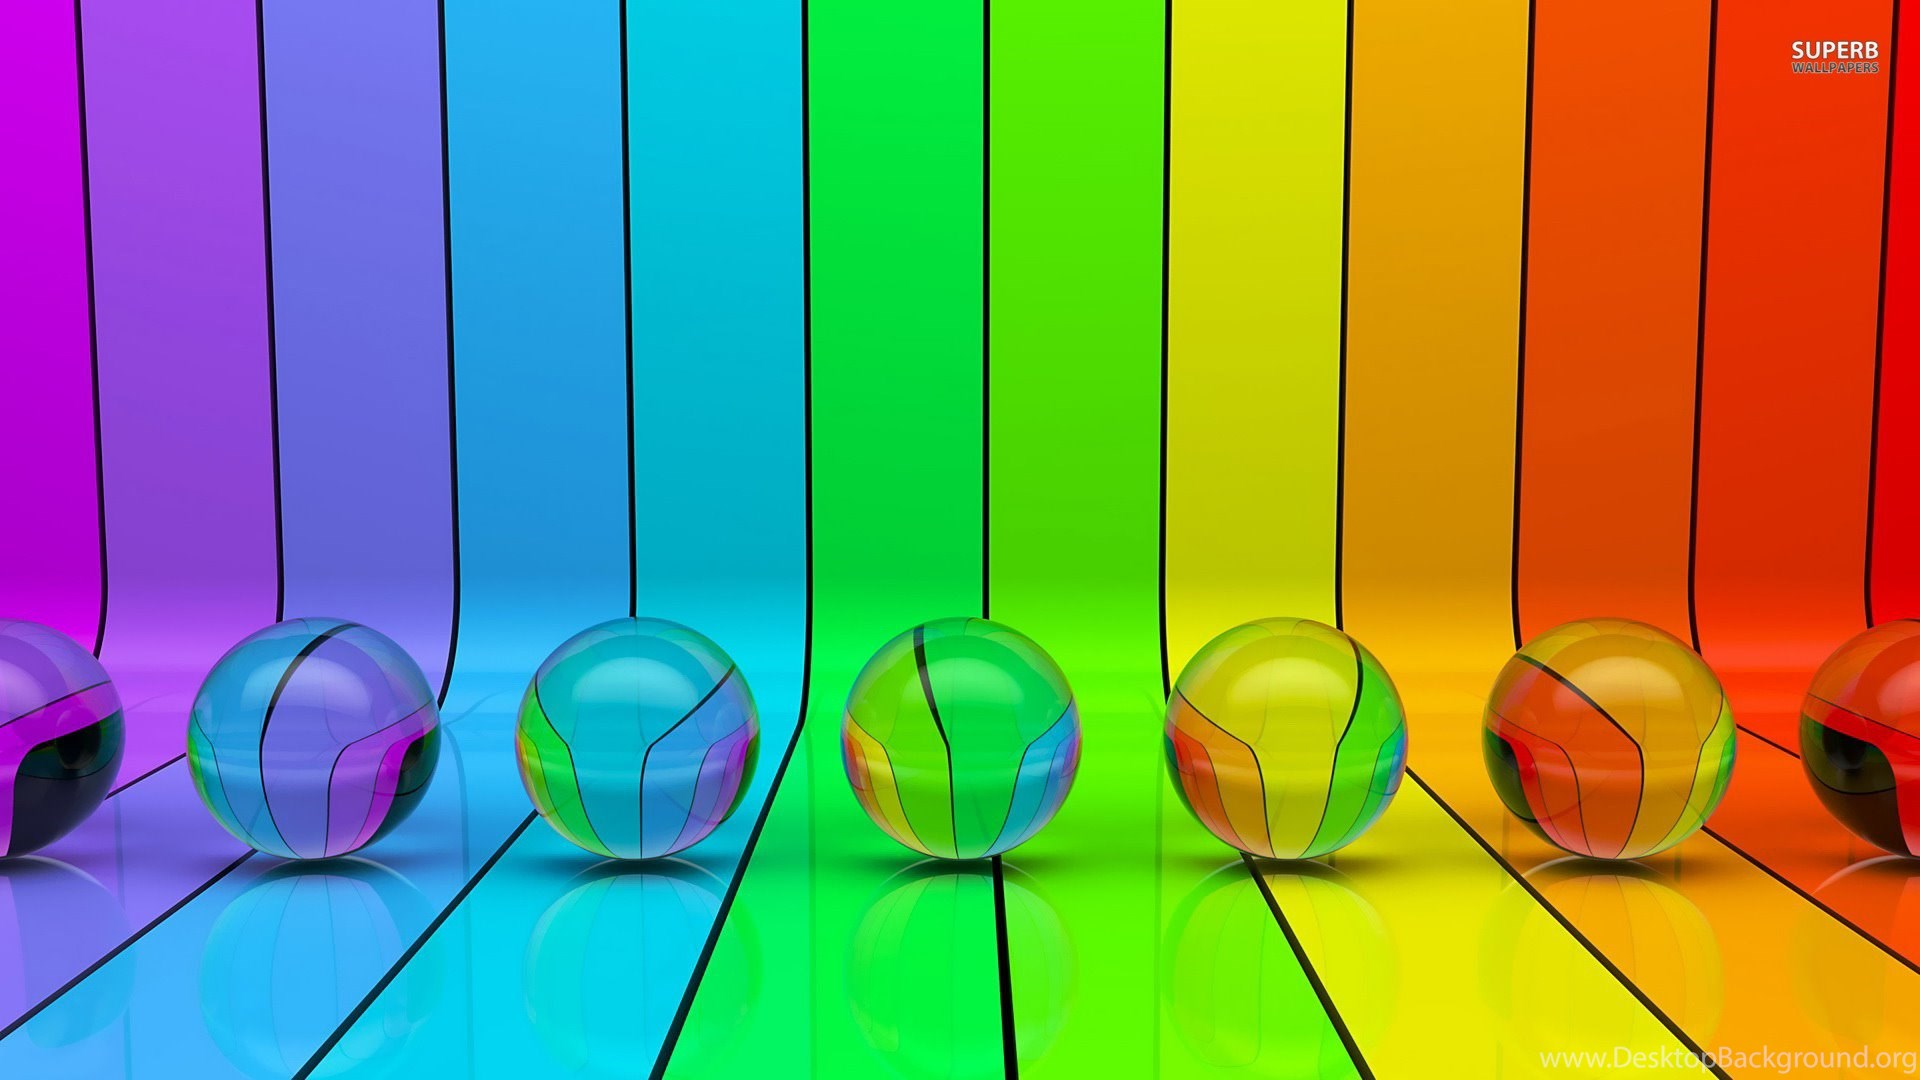 High Resolution Cool Colorful 3d Rainbow Wallpapers Hd 10 Full Size